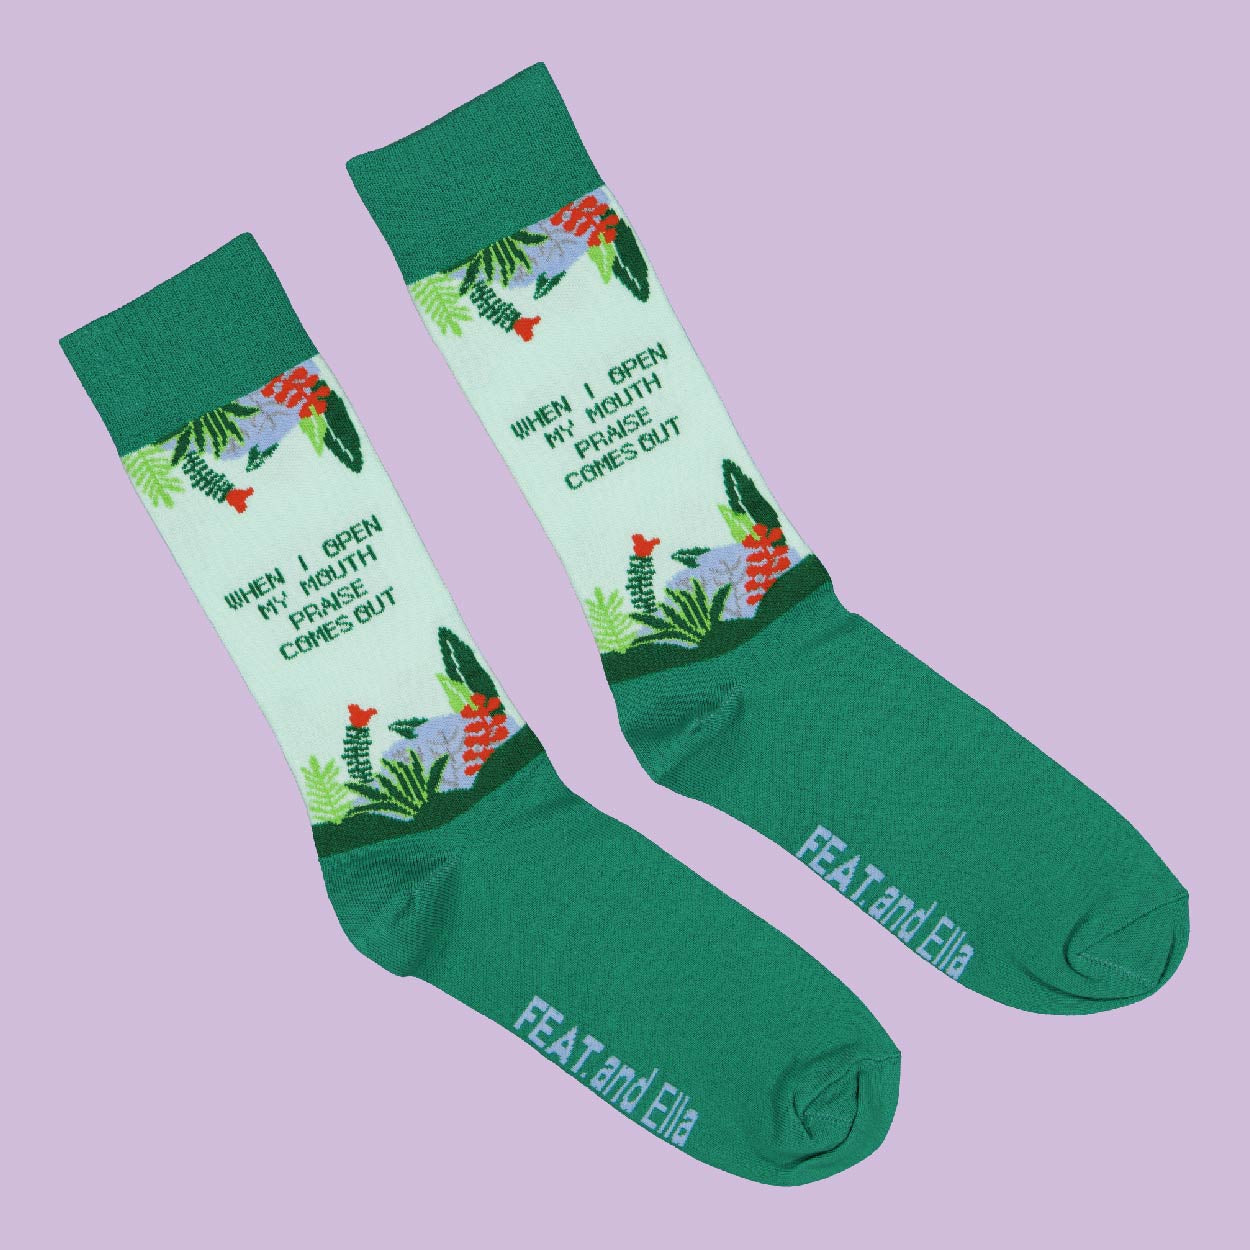 Unisex 'Praise Comes Out' socks by Ella